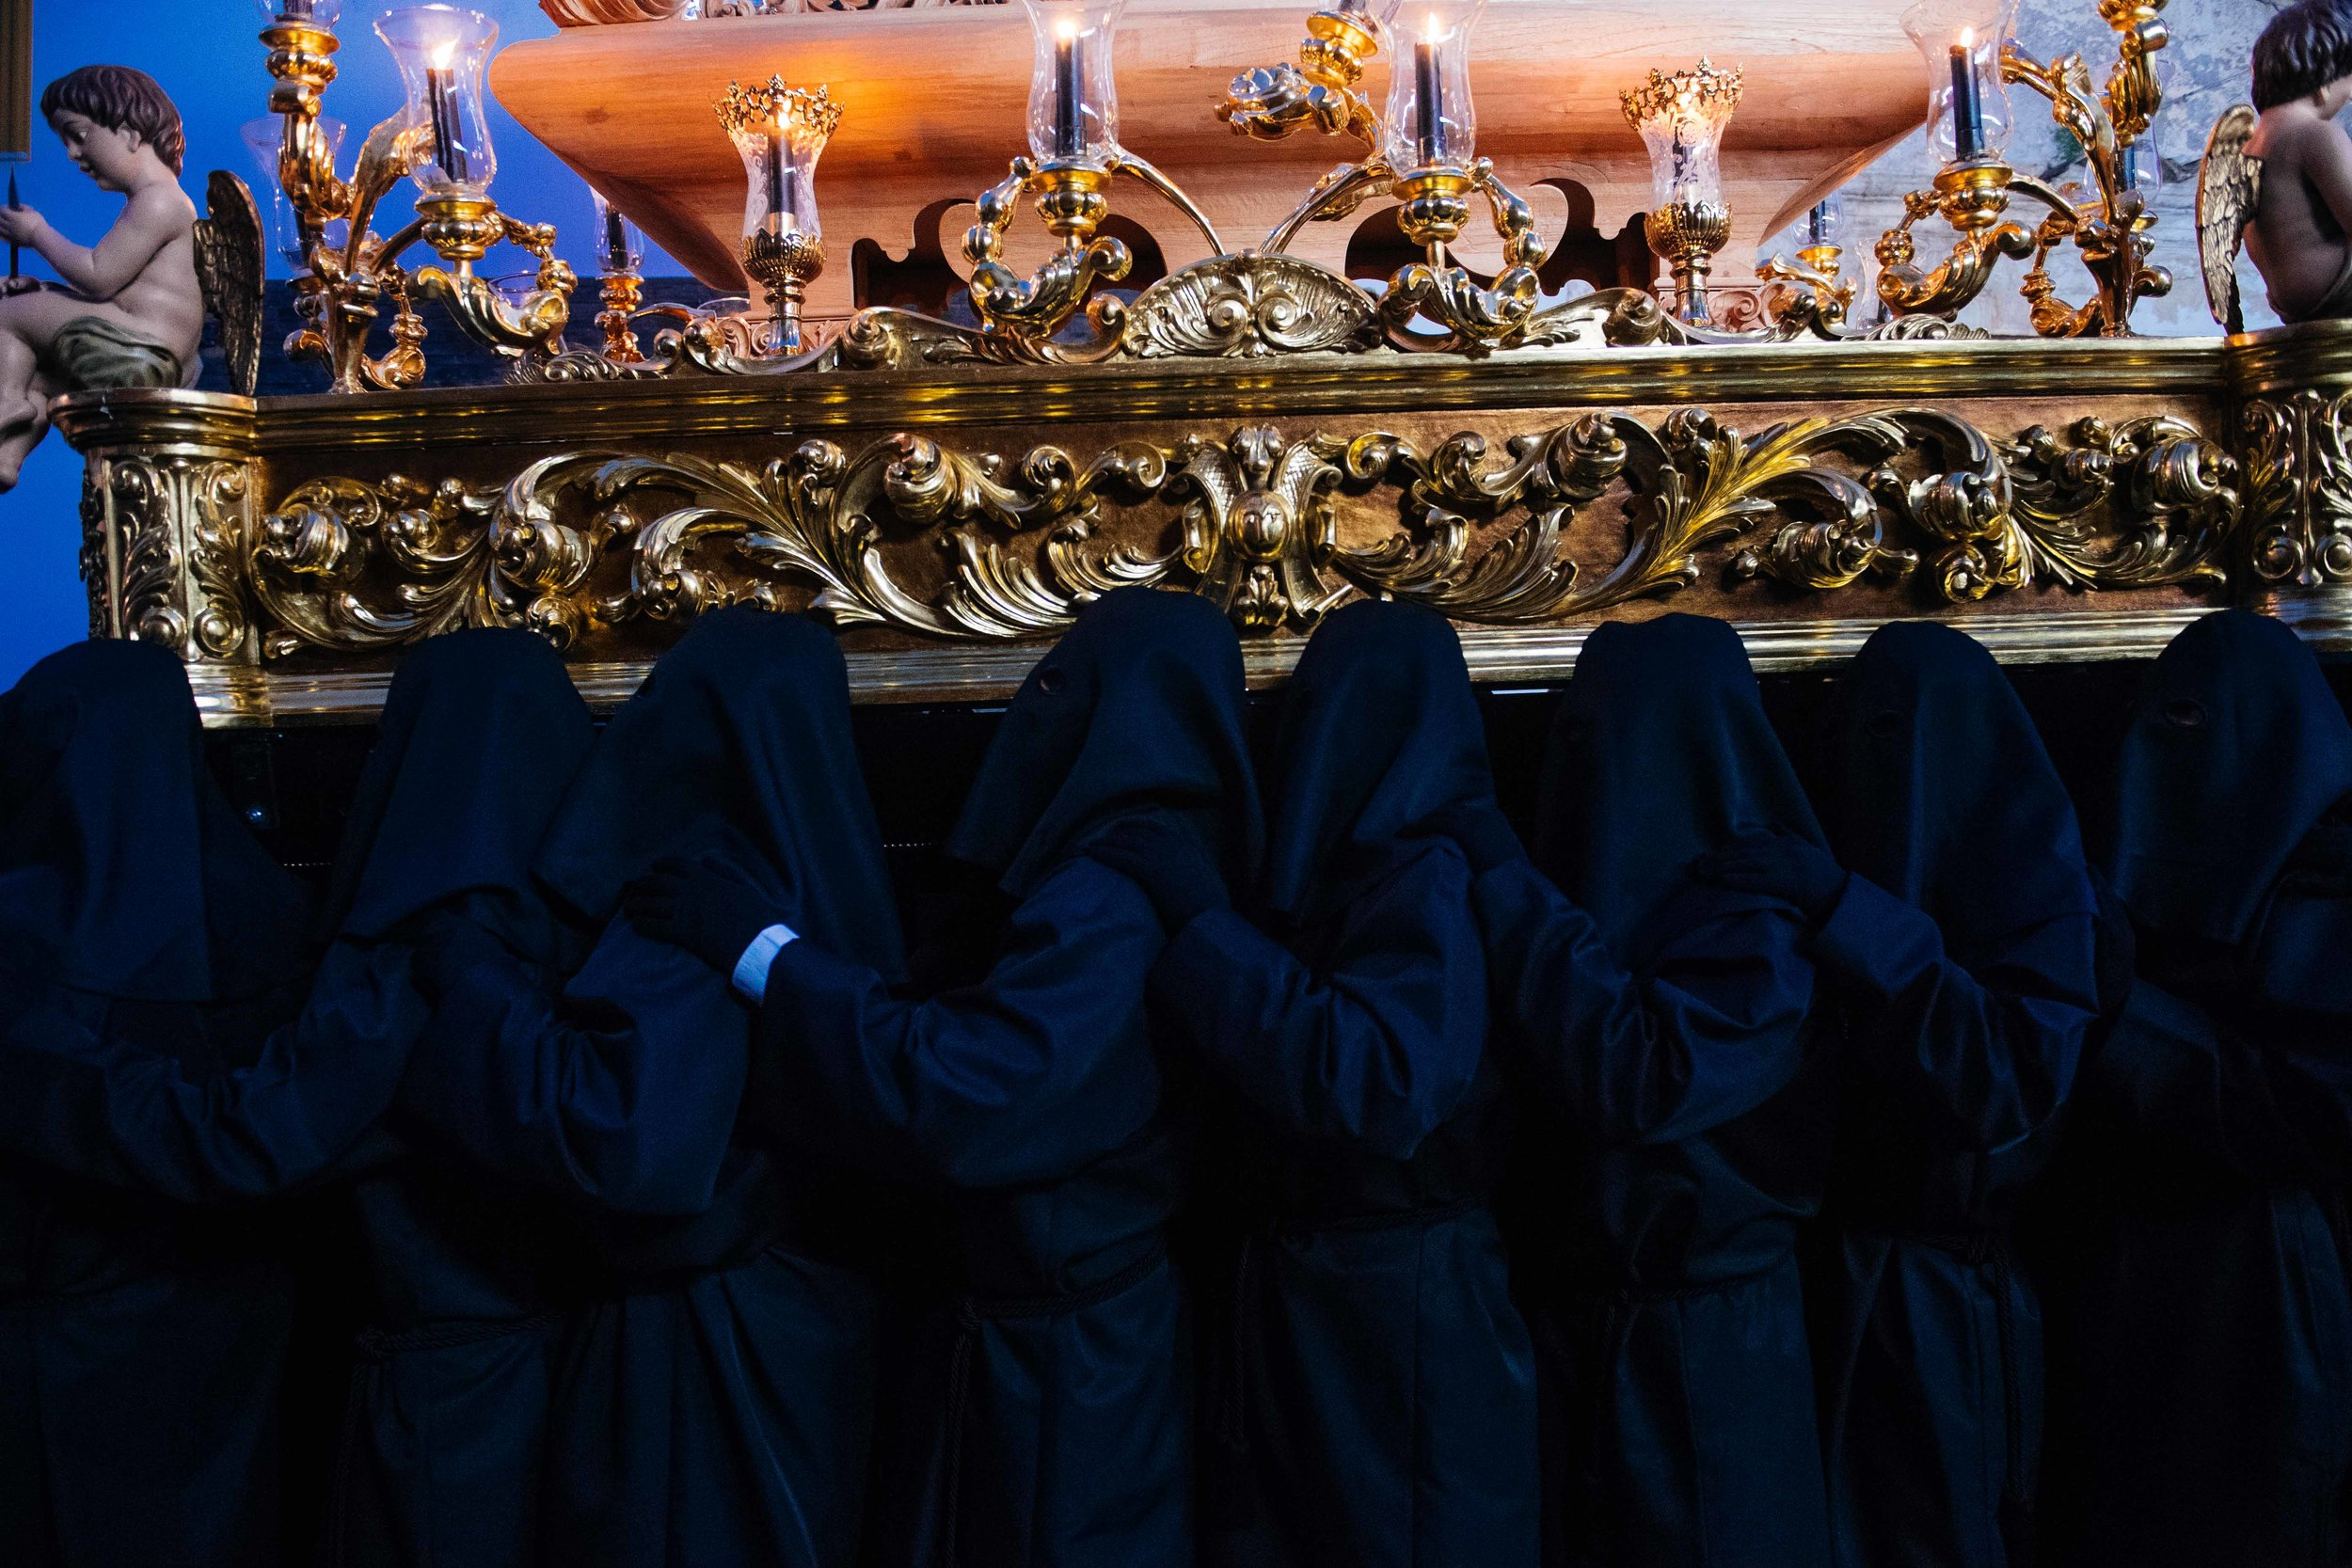 Costaleros wear black clothing and hoods to seem invisible at night so the image of Christ appears to be floating on the streets.